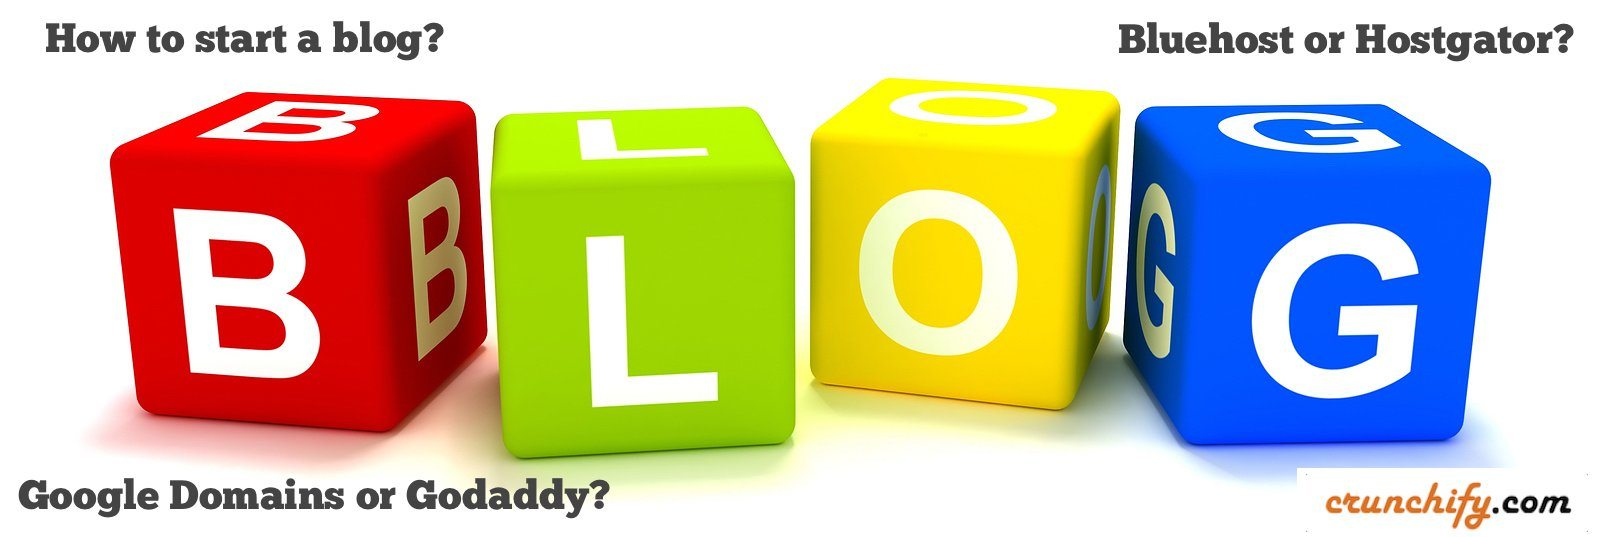 How-to-Start-a-blog-Crunchify-Tips